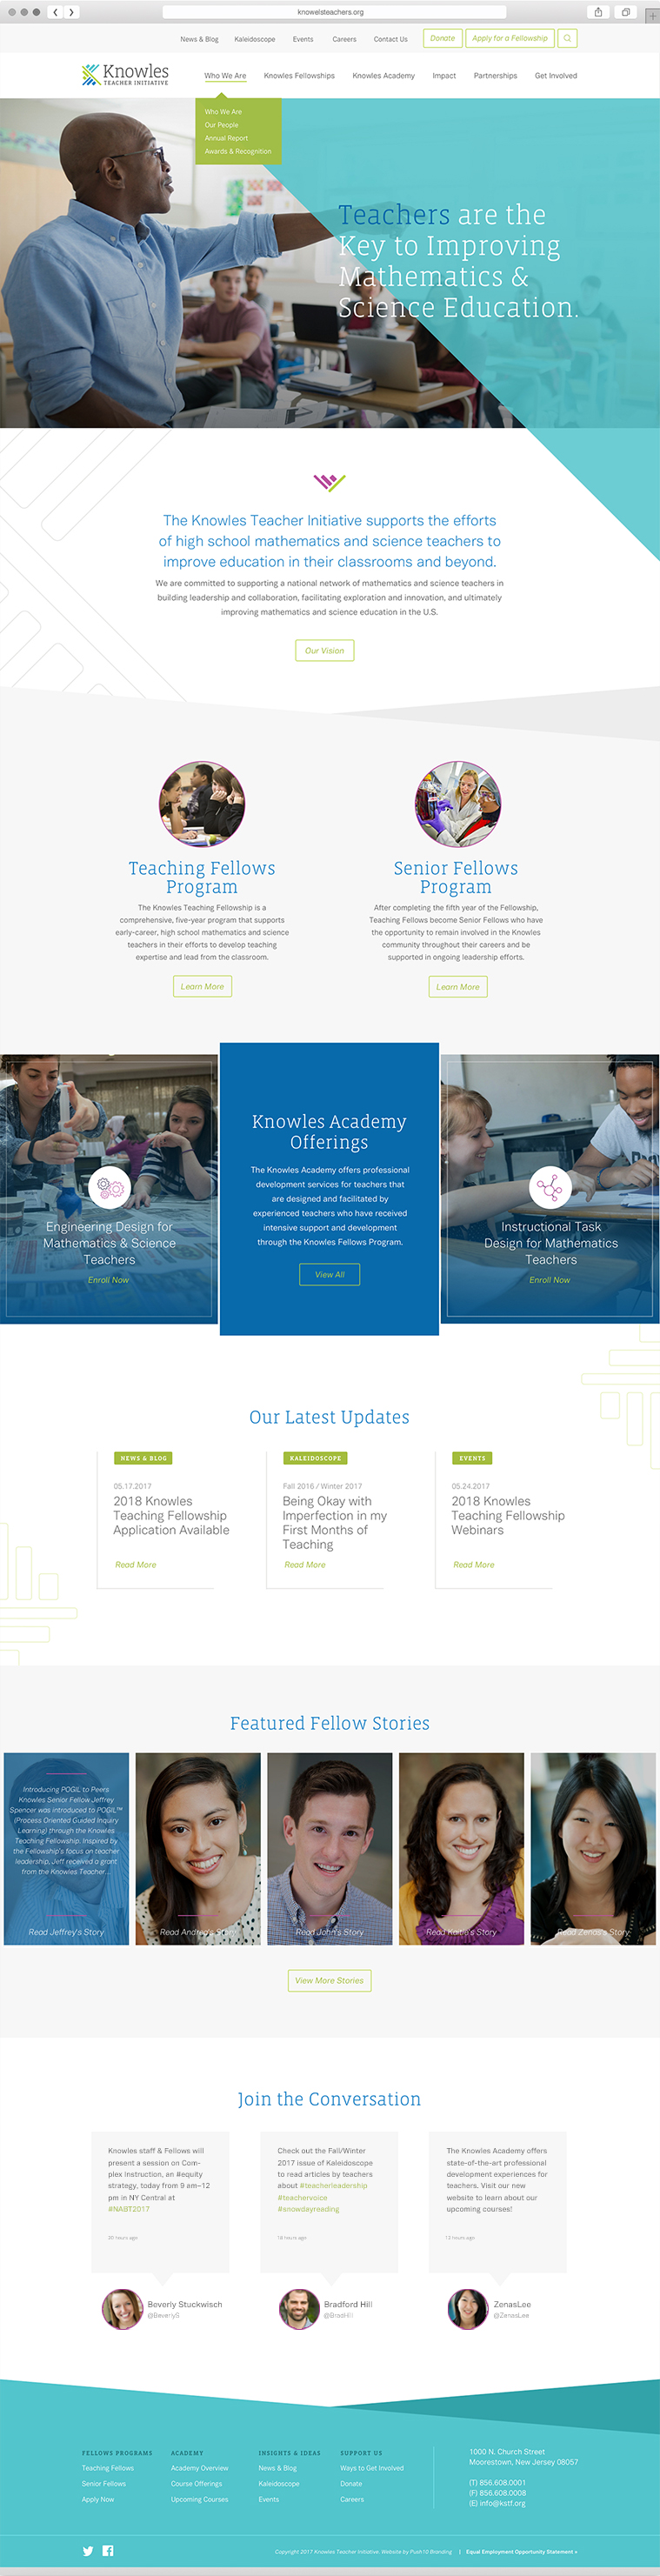 Knowles Teacher Initiative Philadelphia Branding Web Design Homepage